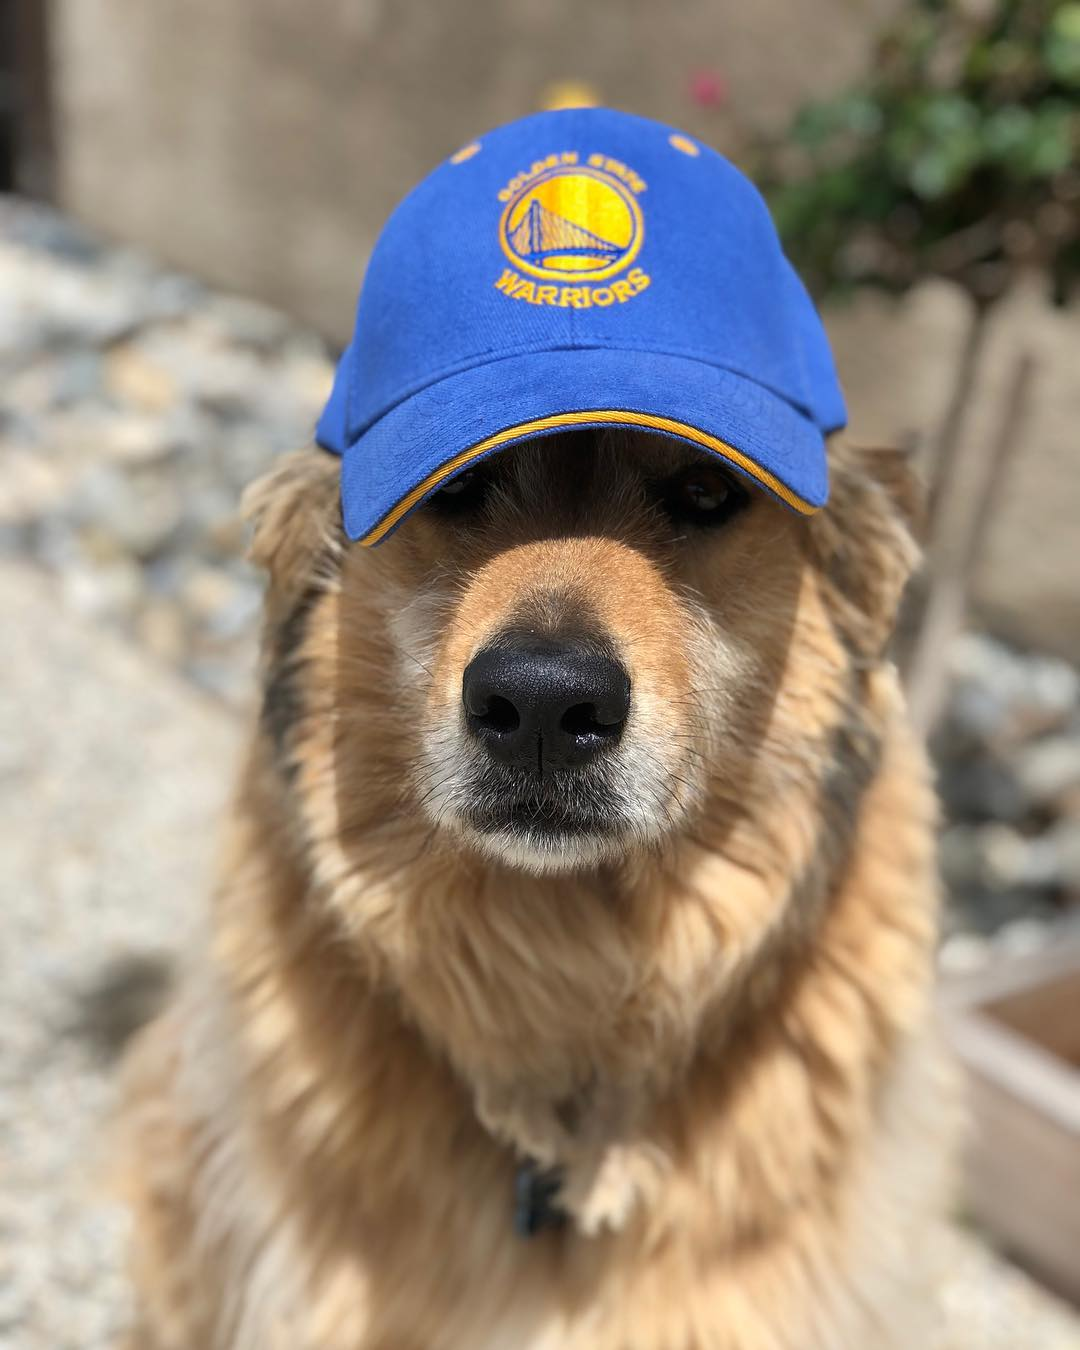 <div class='meta'><div class='origin-logo' data-origin='none'></div><span class='caption-text' data-credit='Photo submitted to KGO-TV by @livin_like_scooter via Instagram'>Warriors fans show their spirit during the 2017-2018 season. Share your photos using #DubsOn7 and you may see them online or on TV!</span></div>